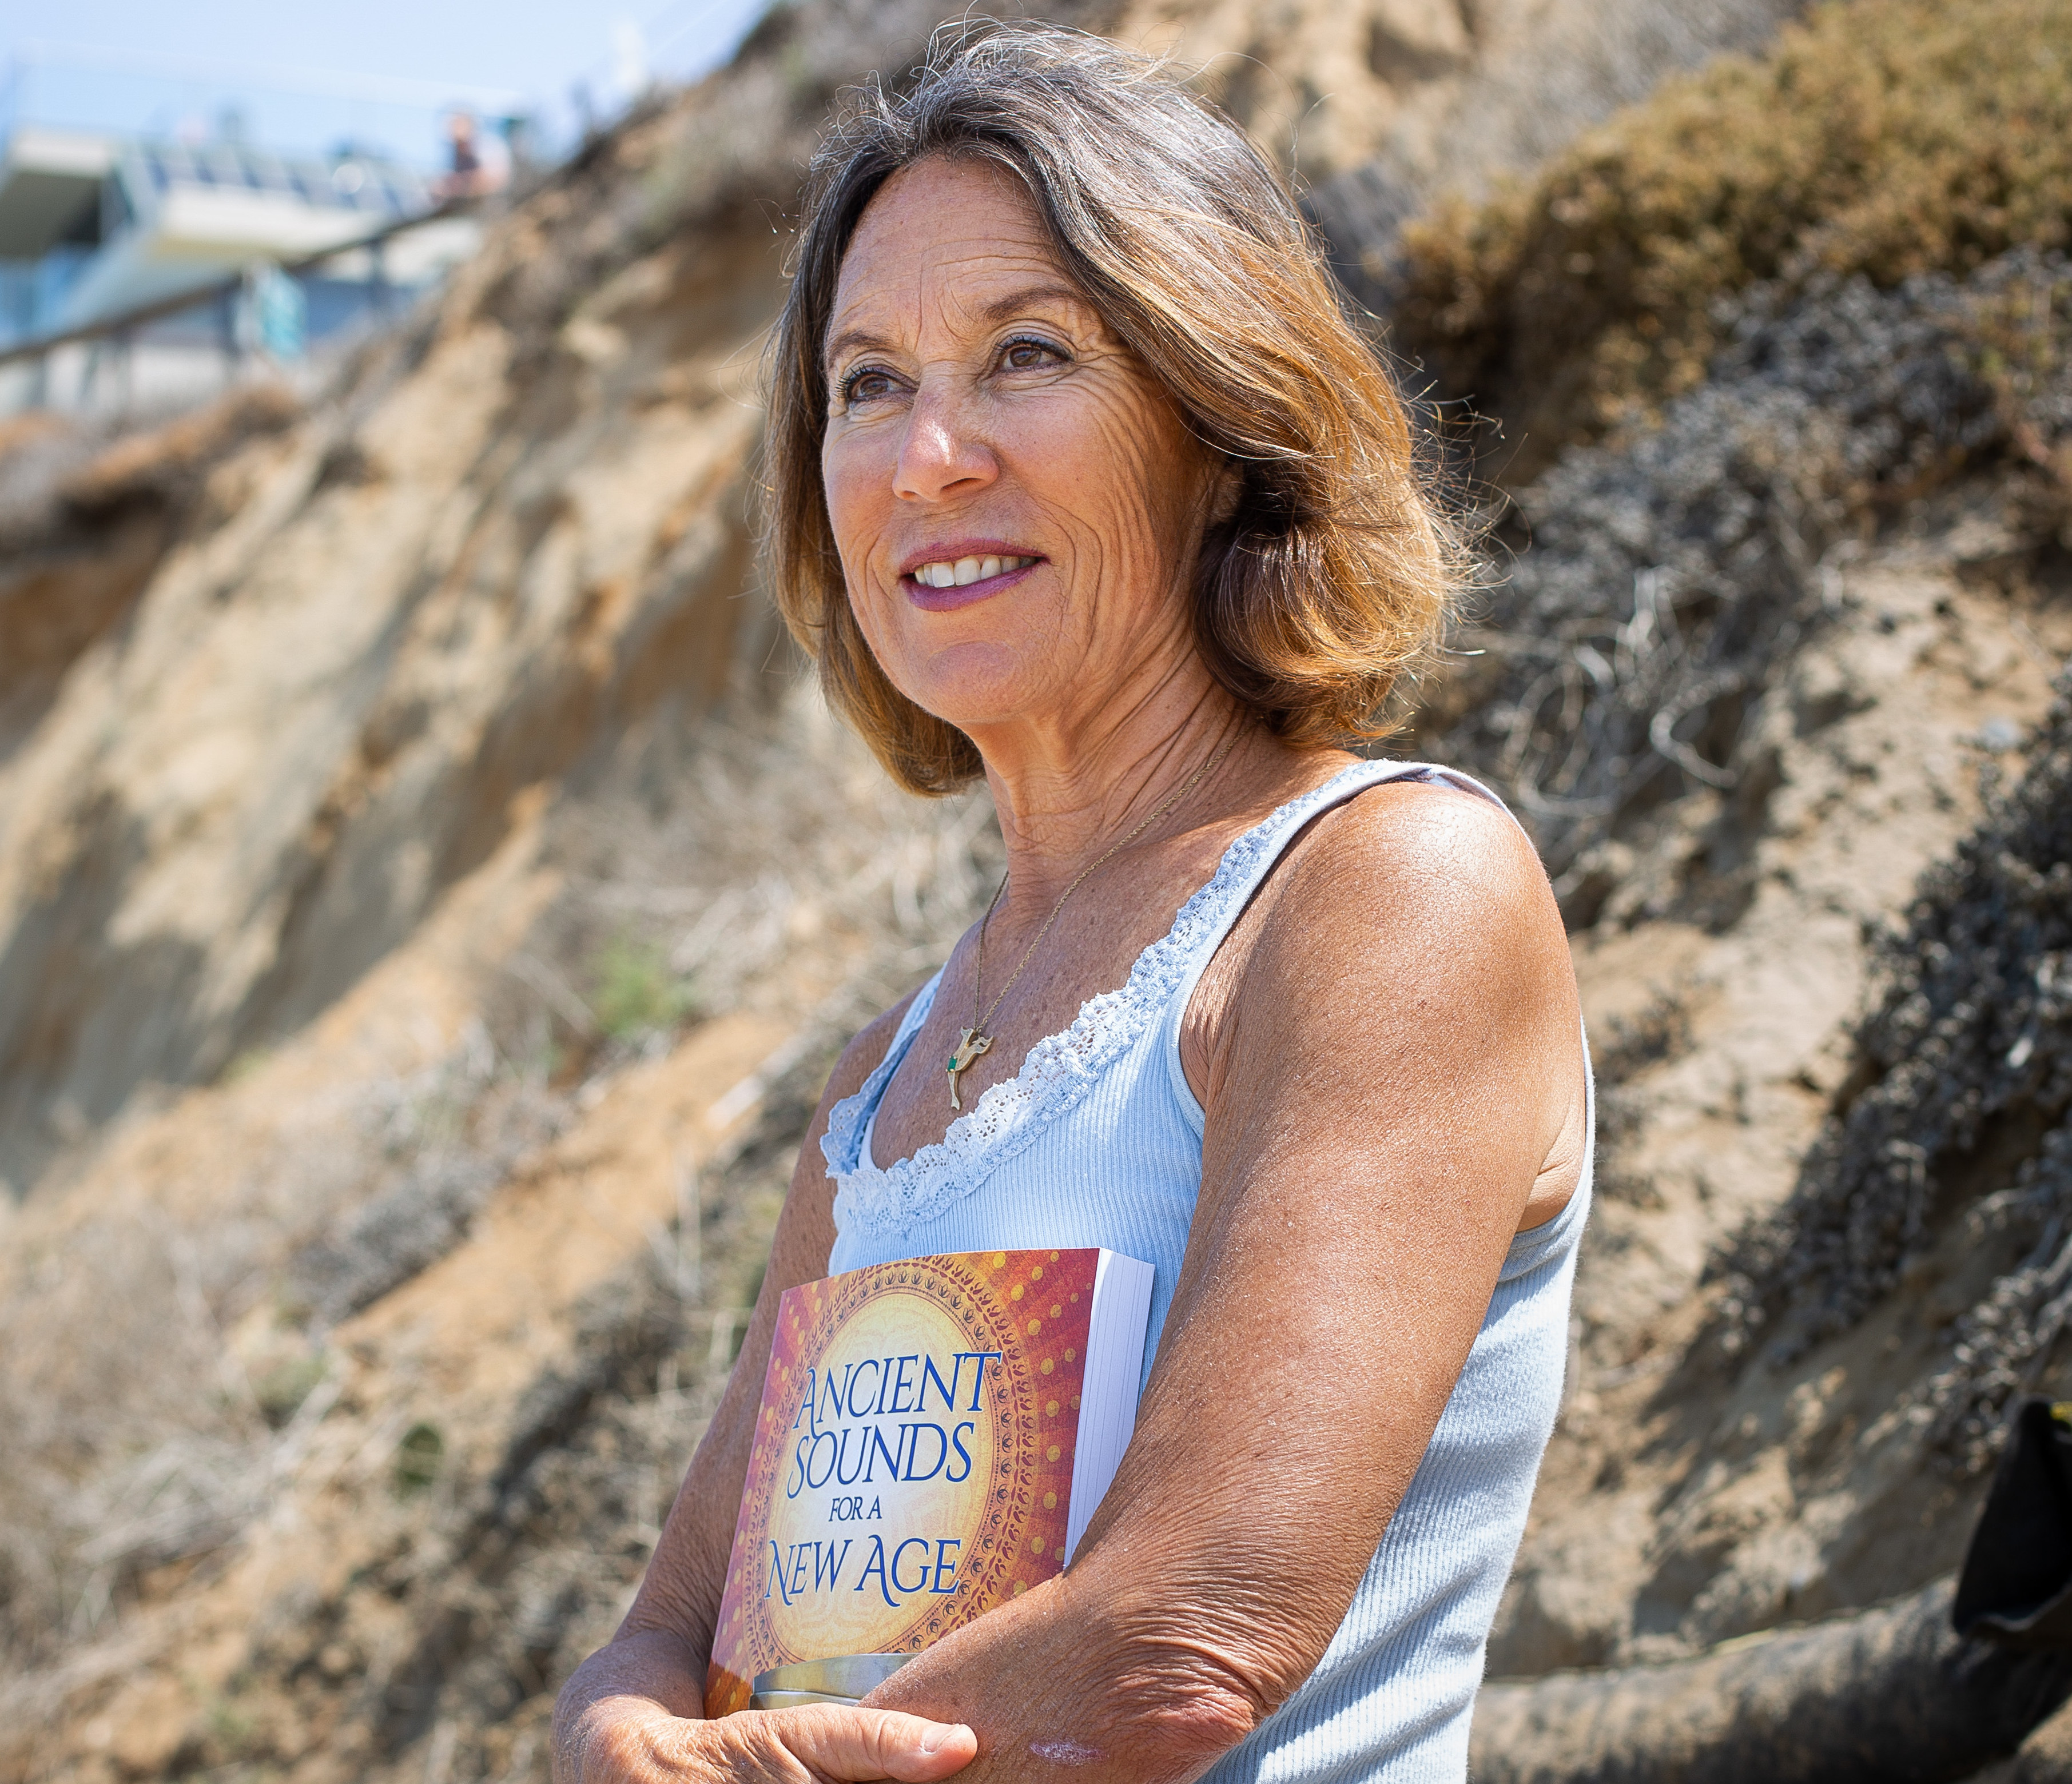 Encinitas practitioner and author helps others using ancient Tibetan bowls